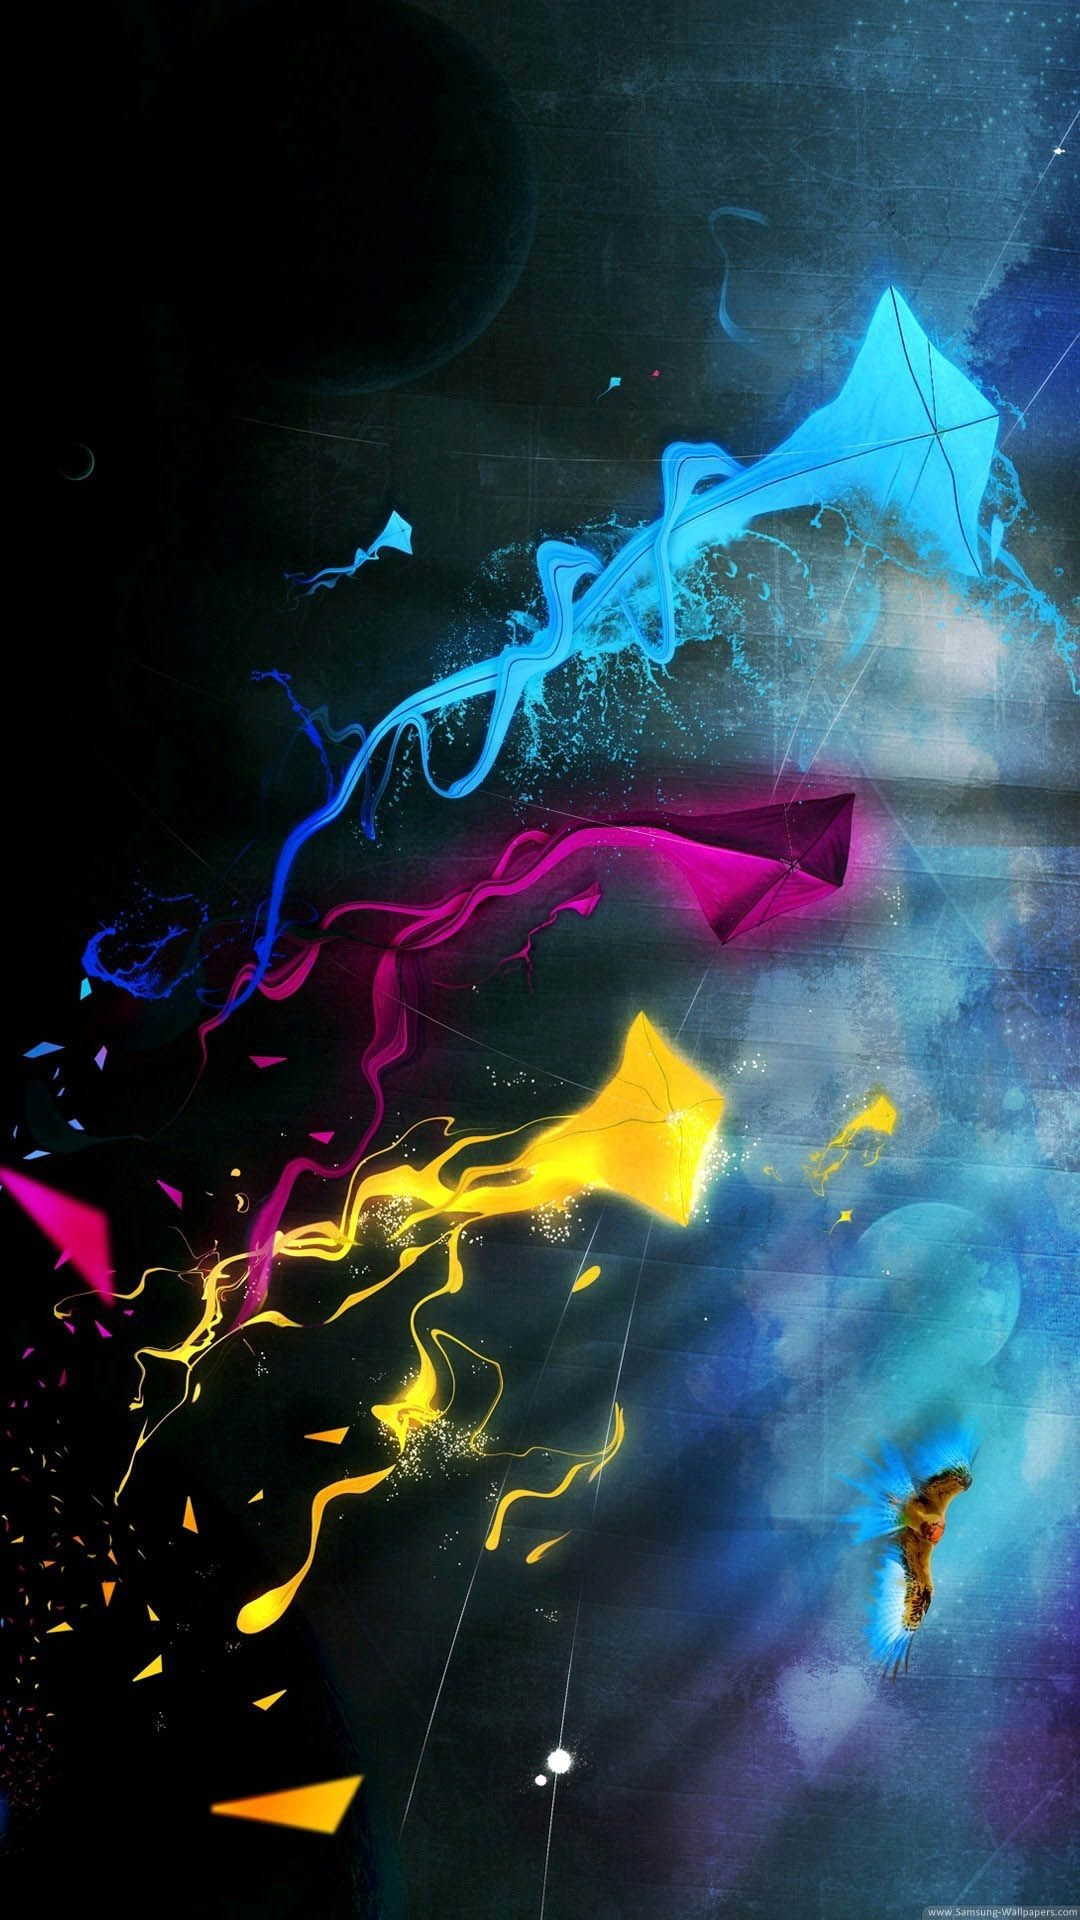 Abstract Colored Kites Iphone 6 Plus Hd Wallpaper   - Lock Screen Iphone 11 - HD Wallpaper